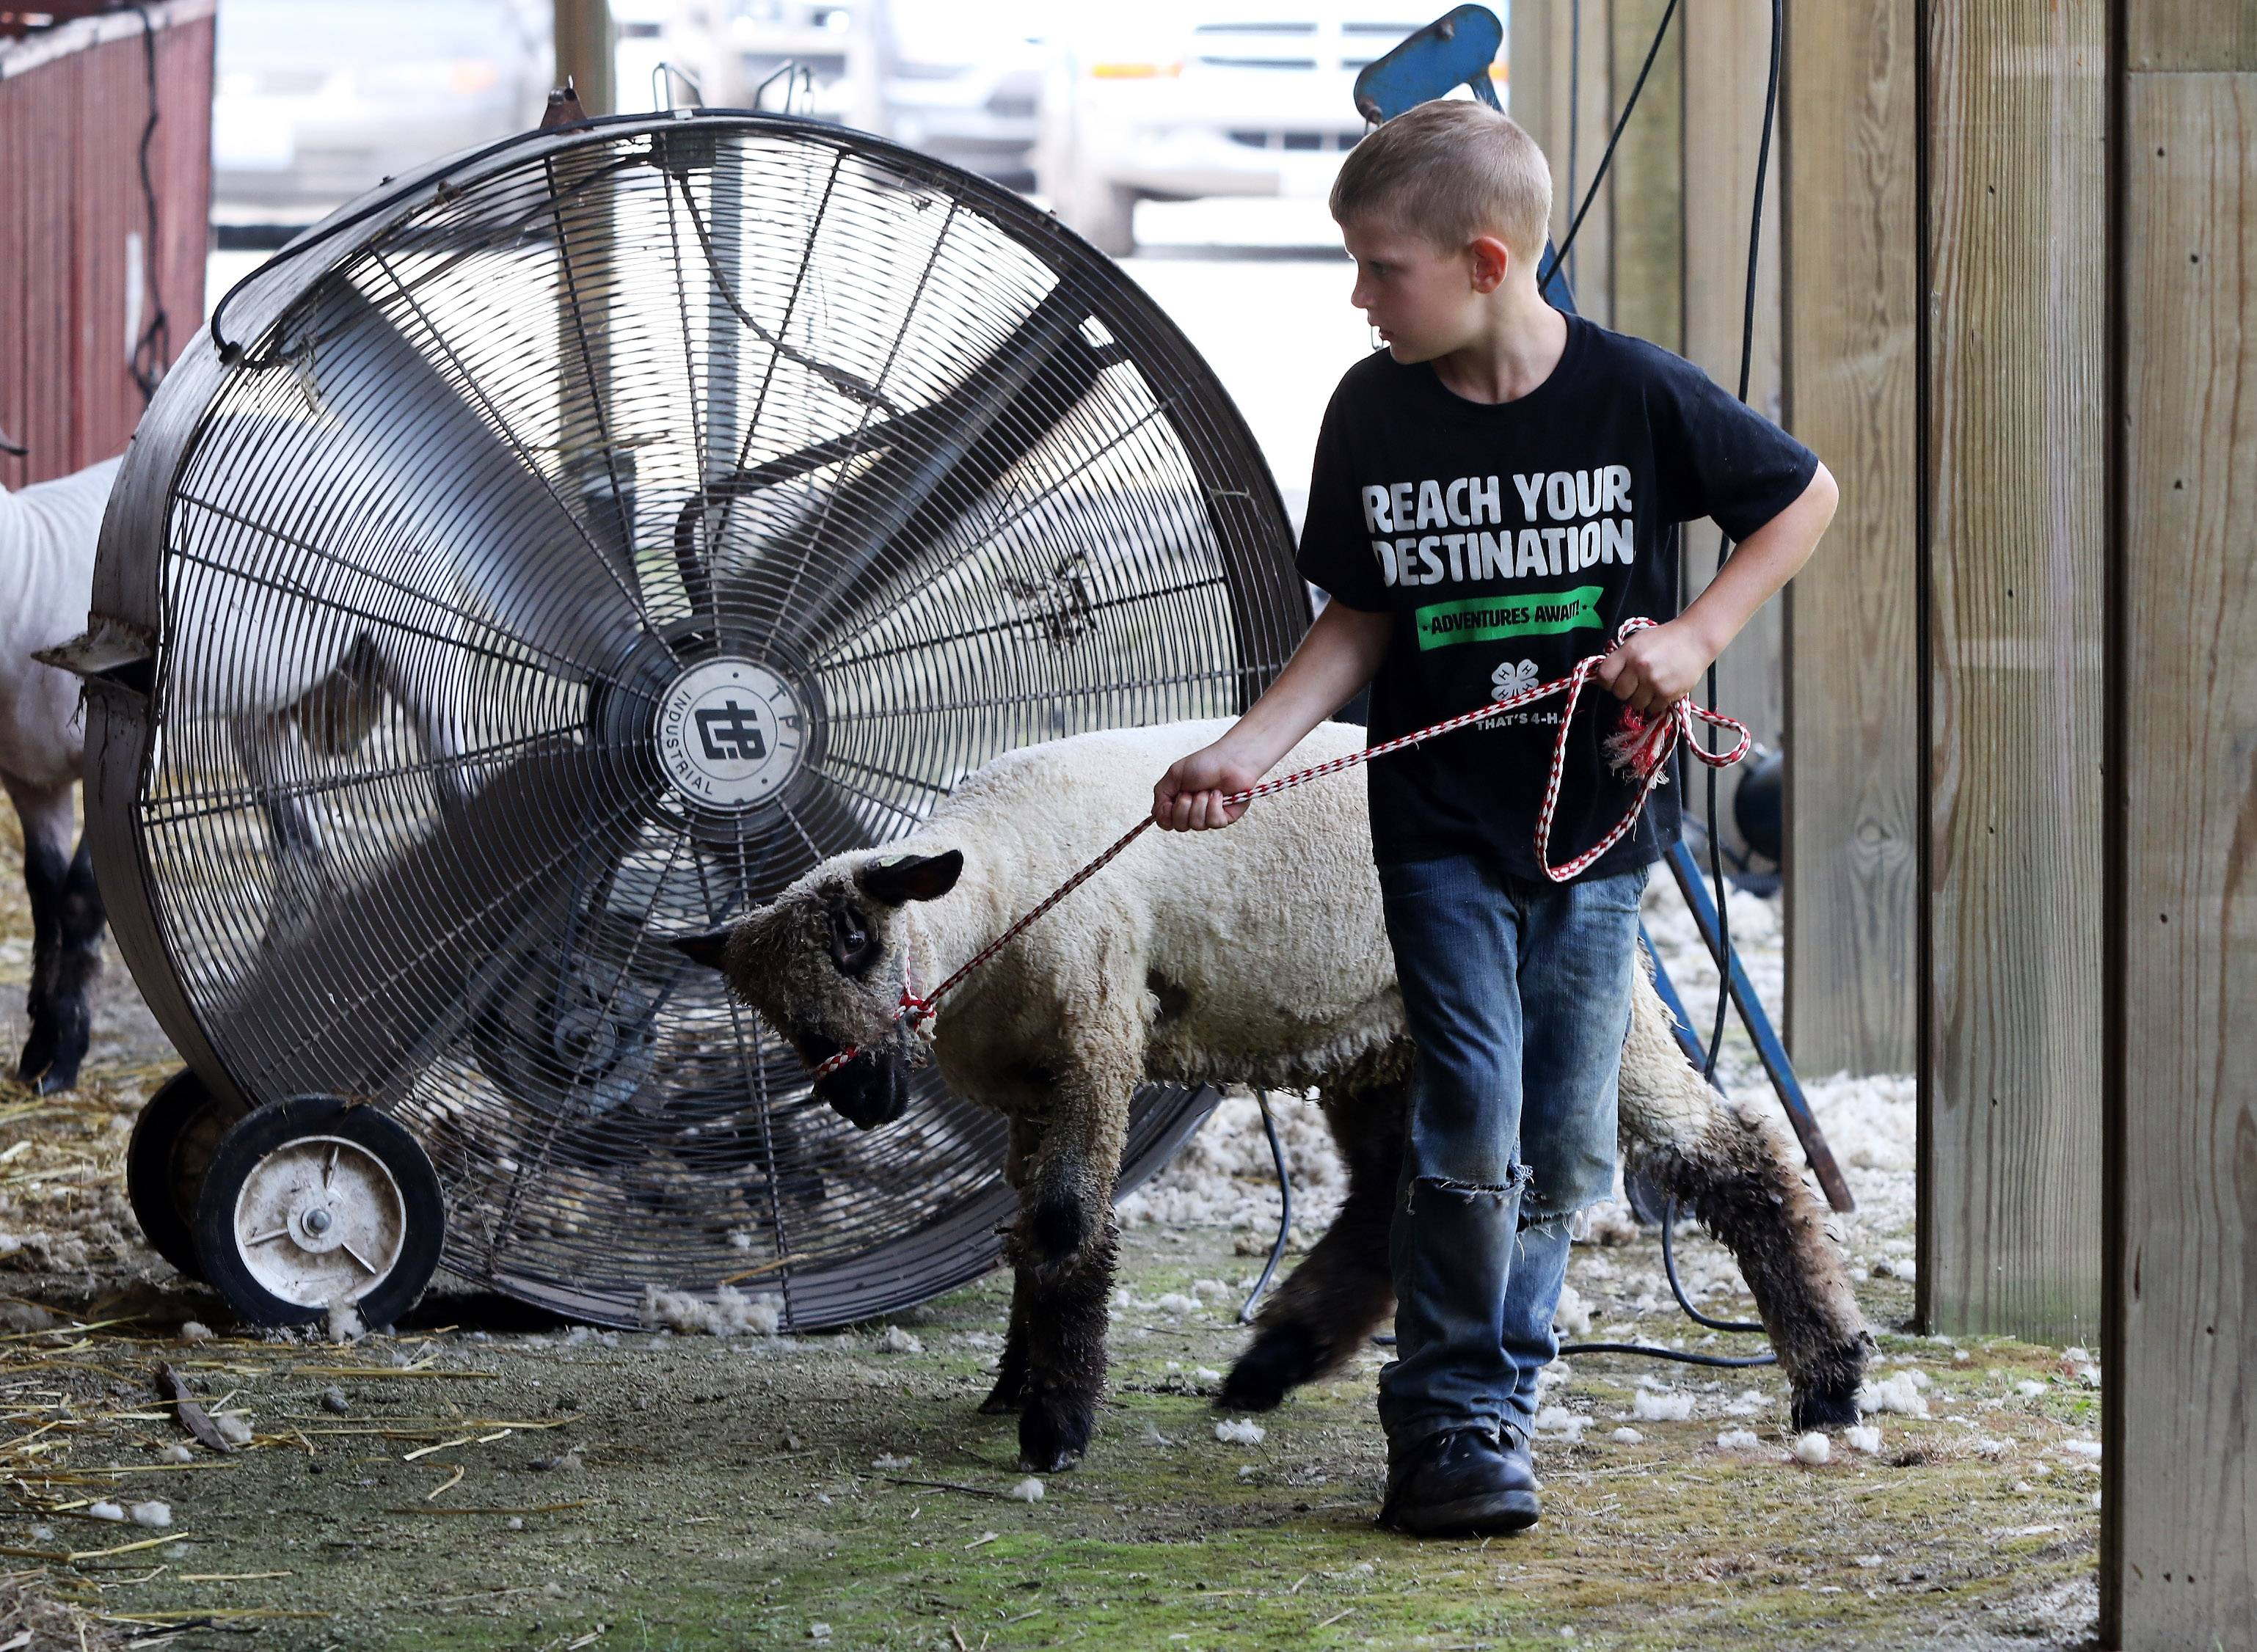 Caleb Linneman, 7, of Hebron, Ill. struggles with a ewe during the first day of the Lake County Fair on Wednesday at the Lake County Fairgrounds in Grayslake. The fair featured Banana Derby racing, Hambone Express Pig racing, motocross and the Miss Lake County Fair Pageant.